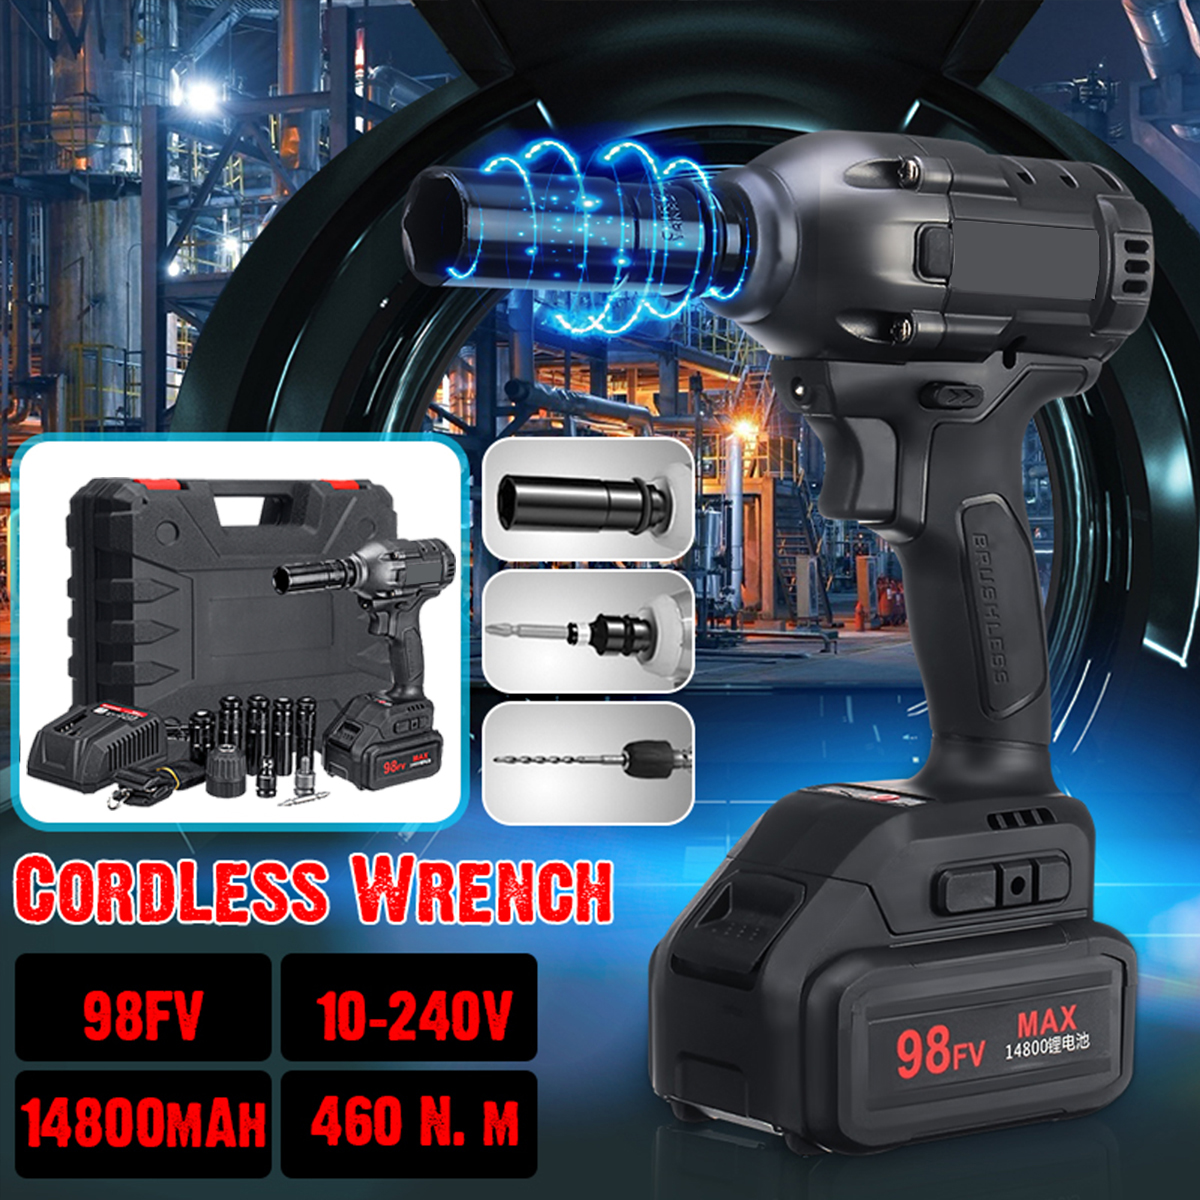 Cordless Brushless Electric Wrench Impact Socket Drill Screwdriver Rechargeable Li-on Battery with Accessories/LED Power Tools